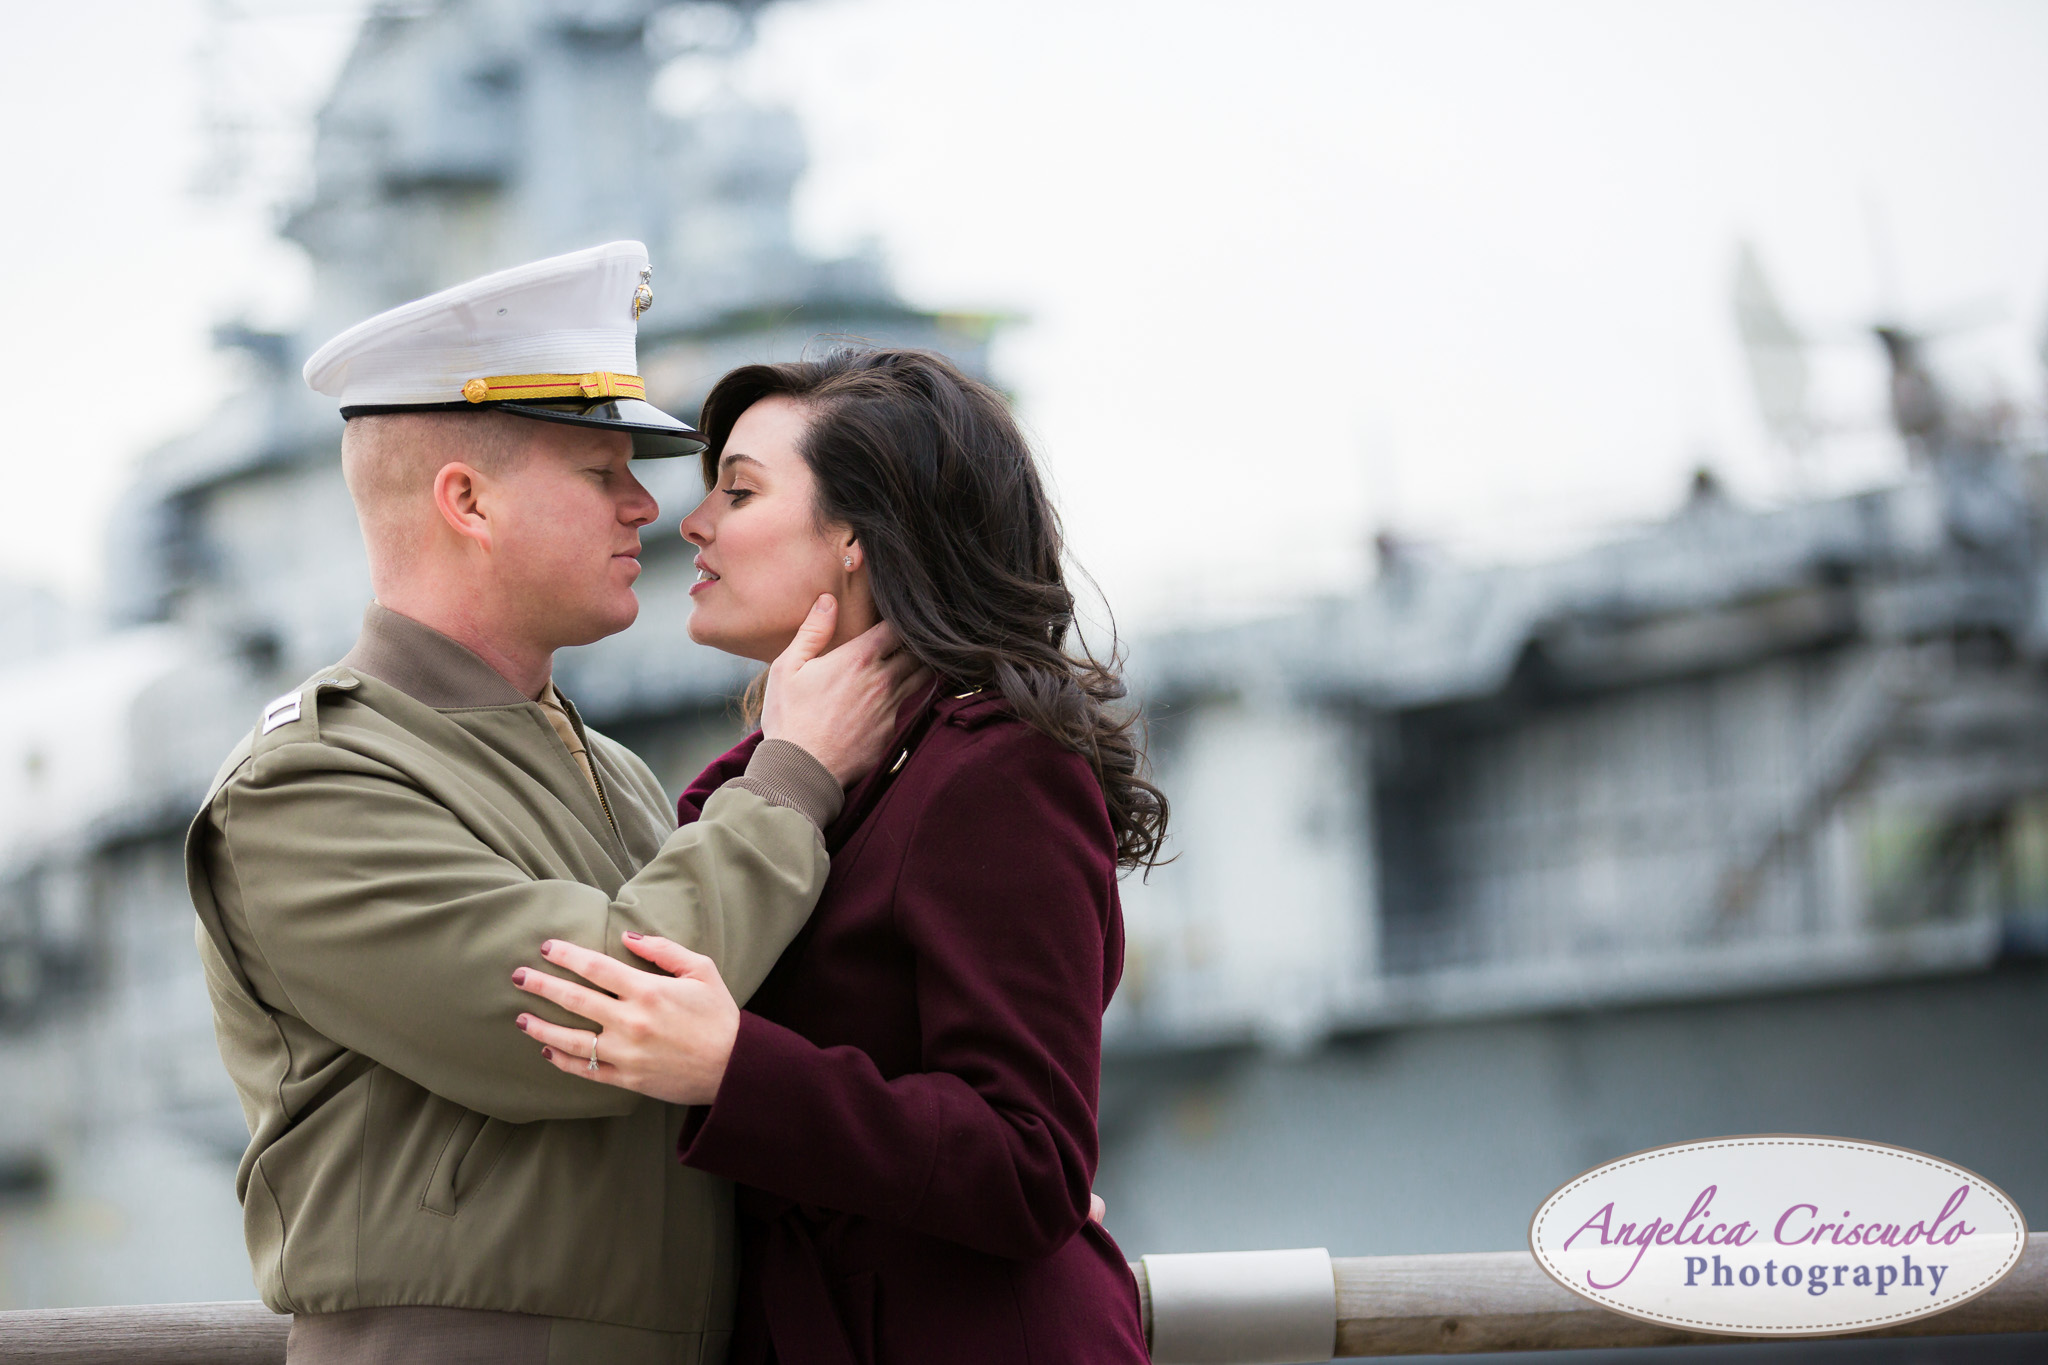 Armed Forces engagement photo ideas